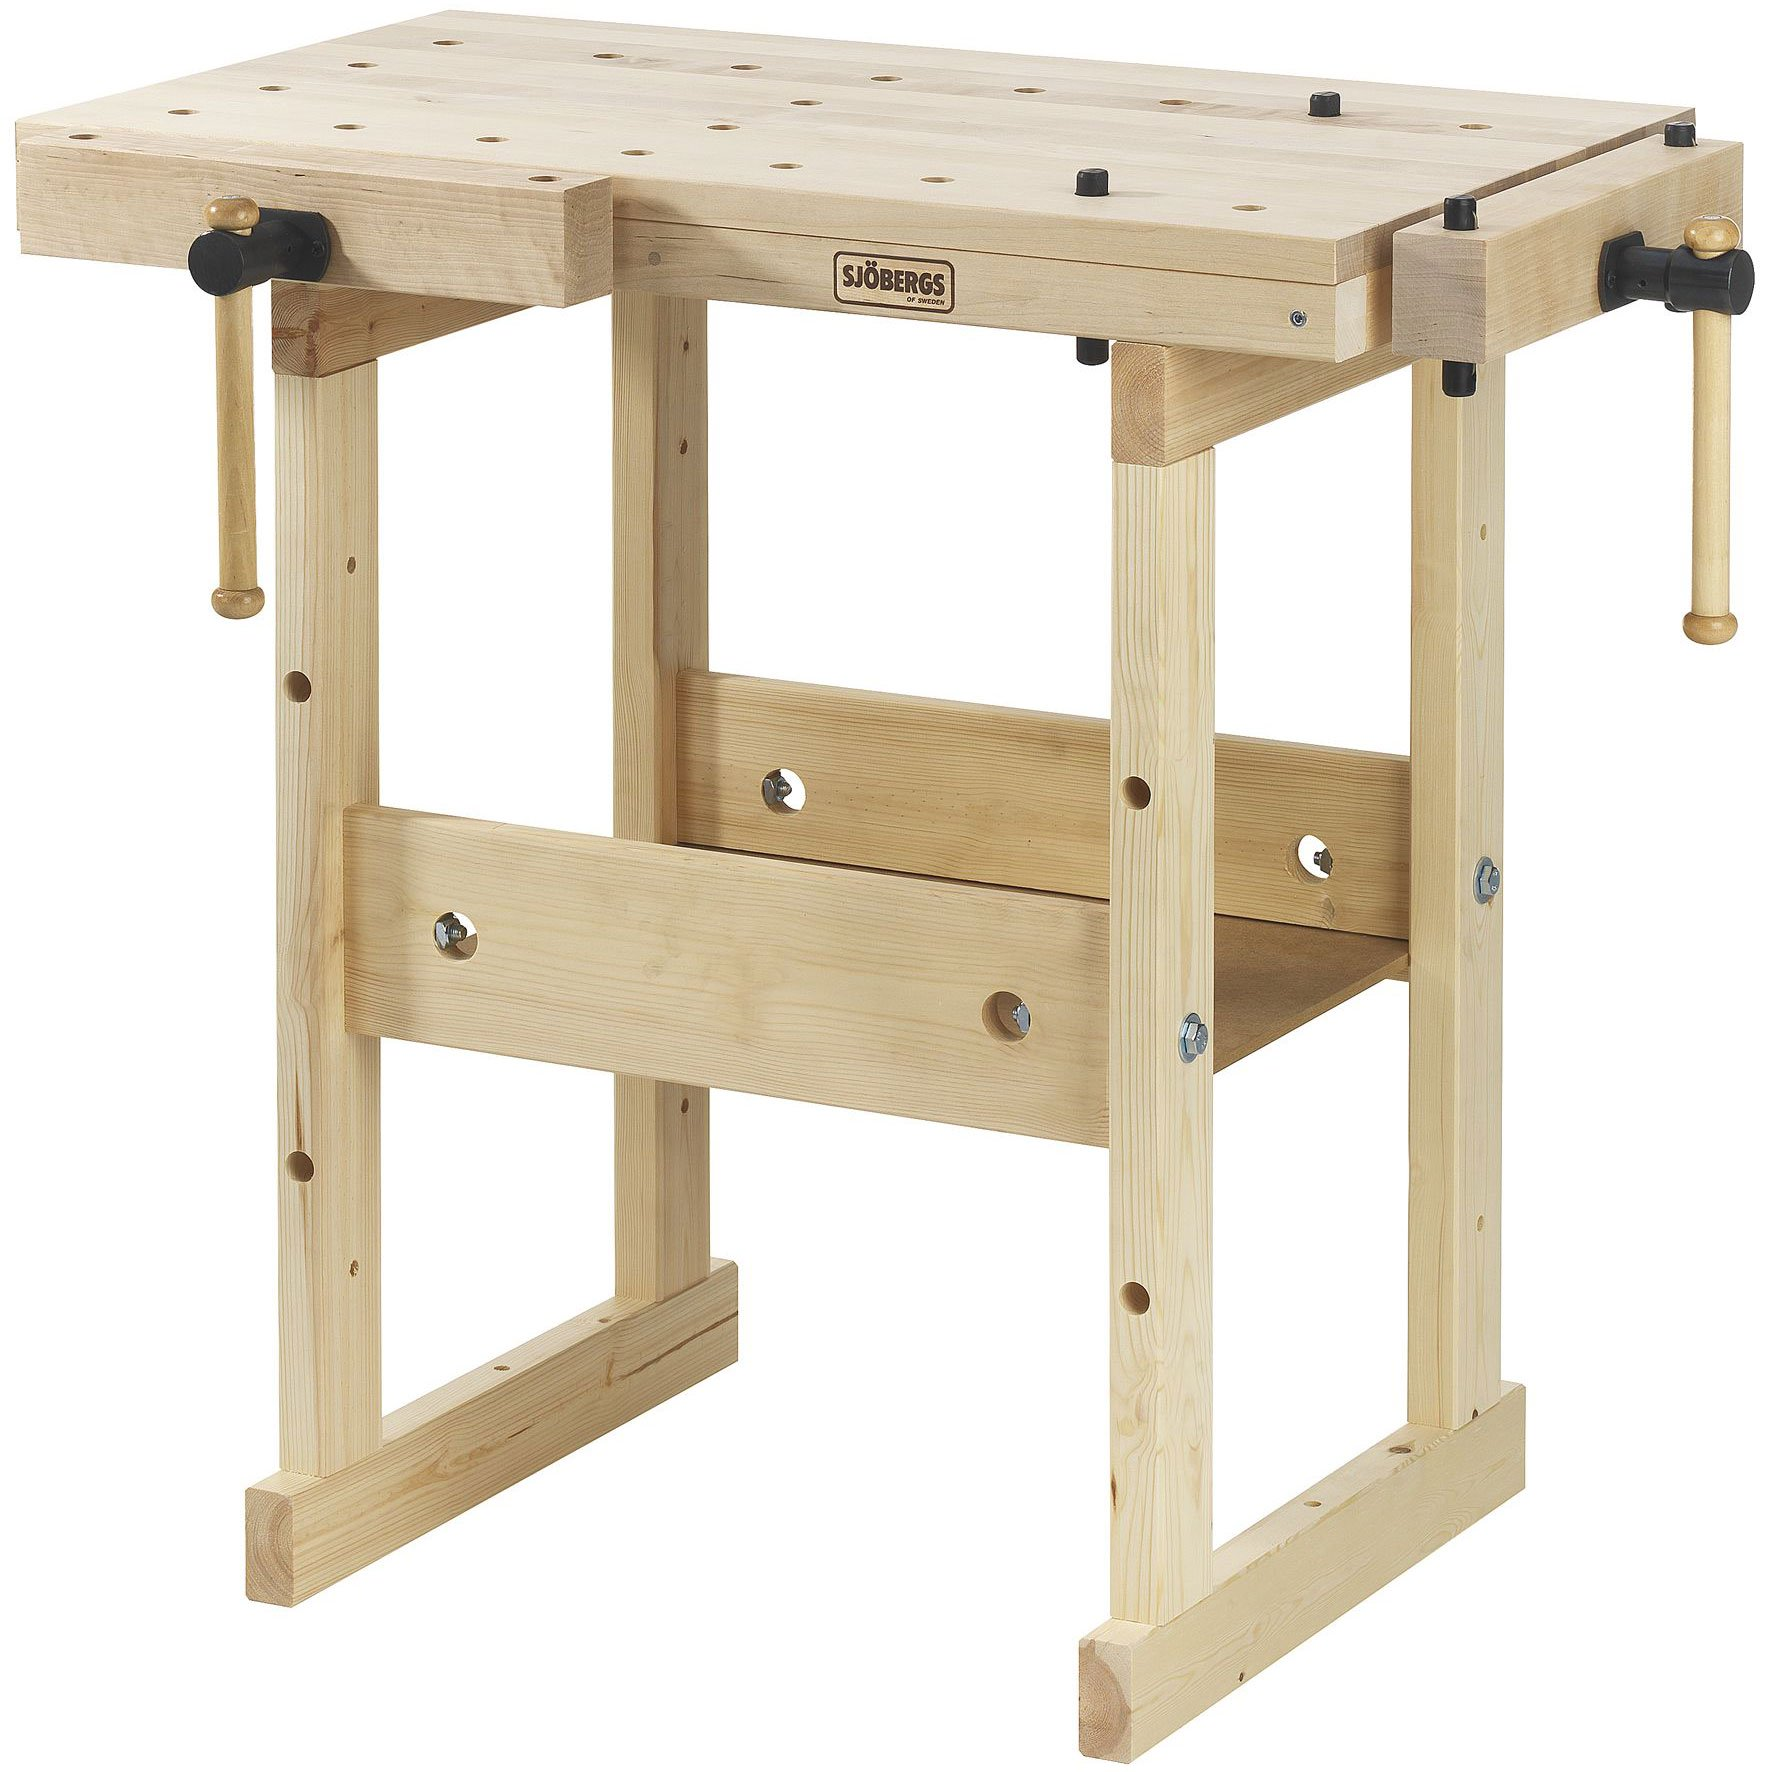 Sjobergs Hobby Plus 850 Birch Wood Hobby and Garage Compact Tools Workbench by Sjobergs